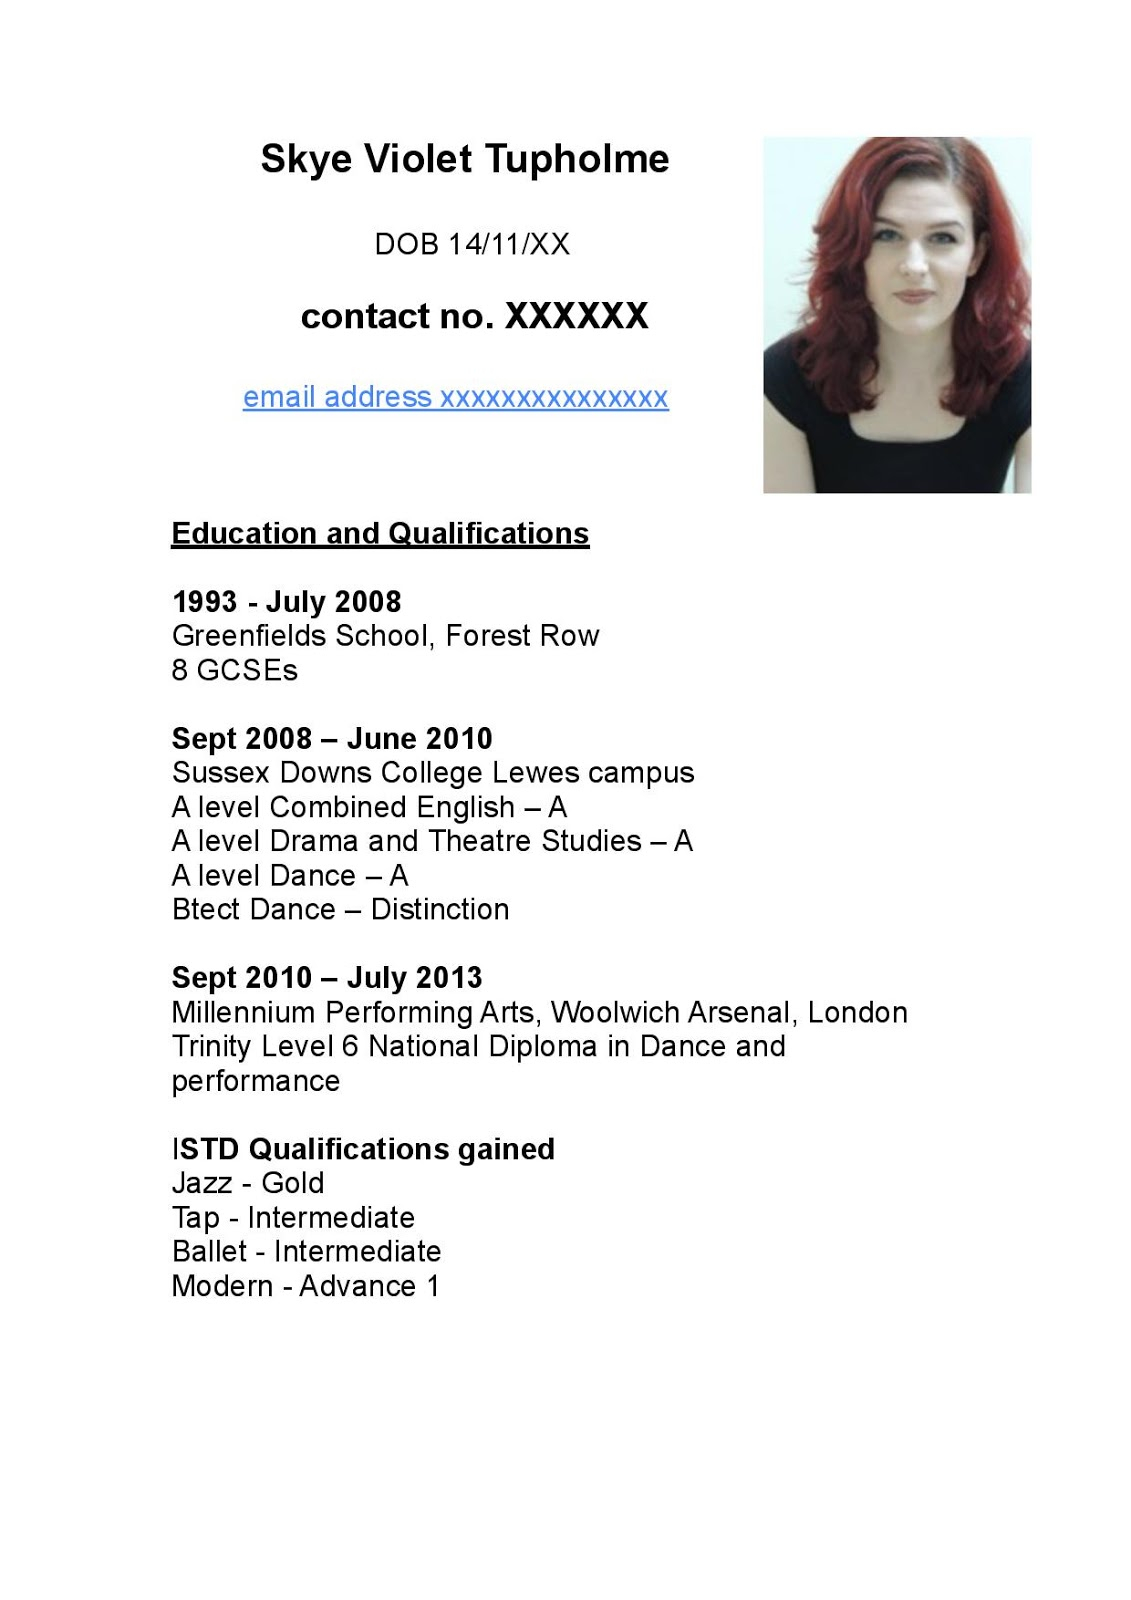 skye violet tupholme task 1a professional profile the first is my performance cv